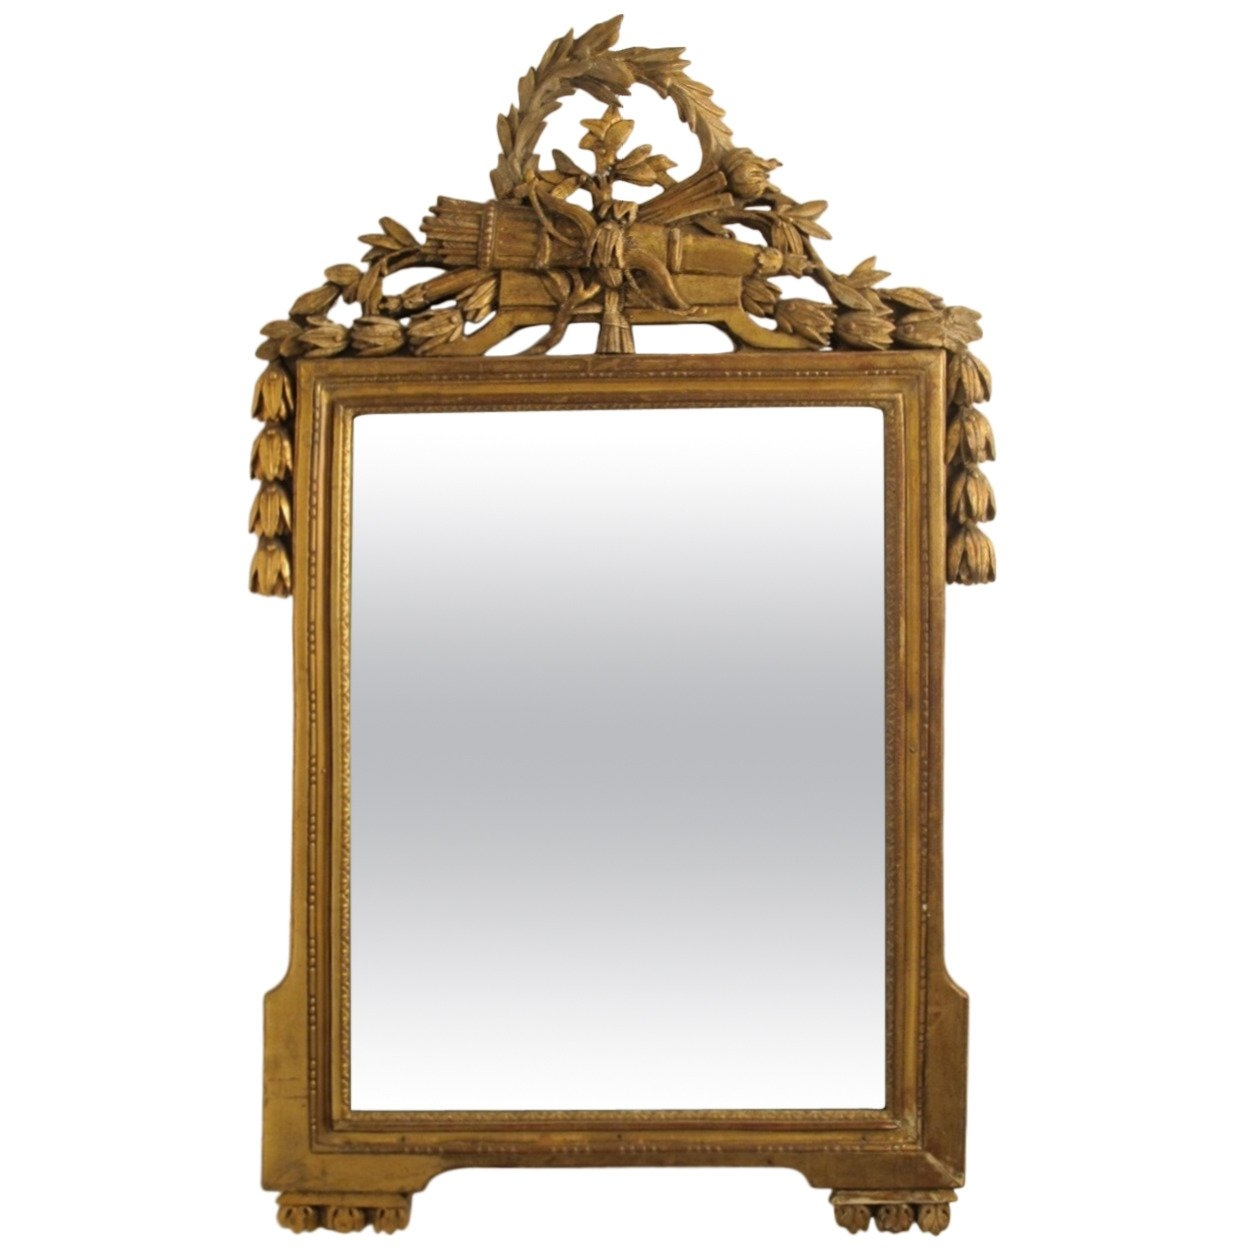 18th Century Louis Xvi Gilt Framed Mirror For Sale At 1stdibs Inside Gilt Framed Mirror (Image 1 of 15)